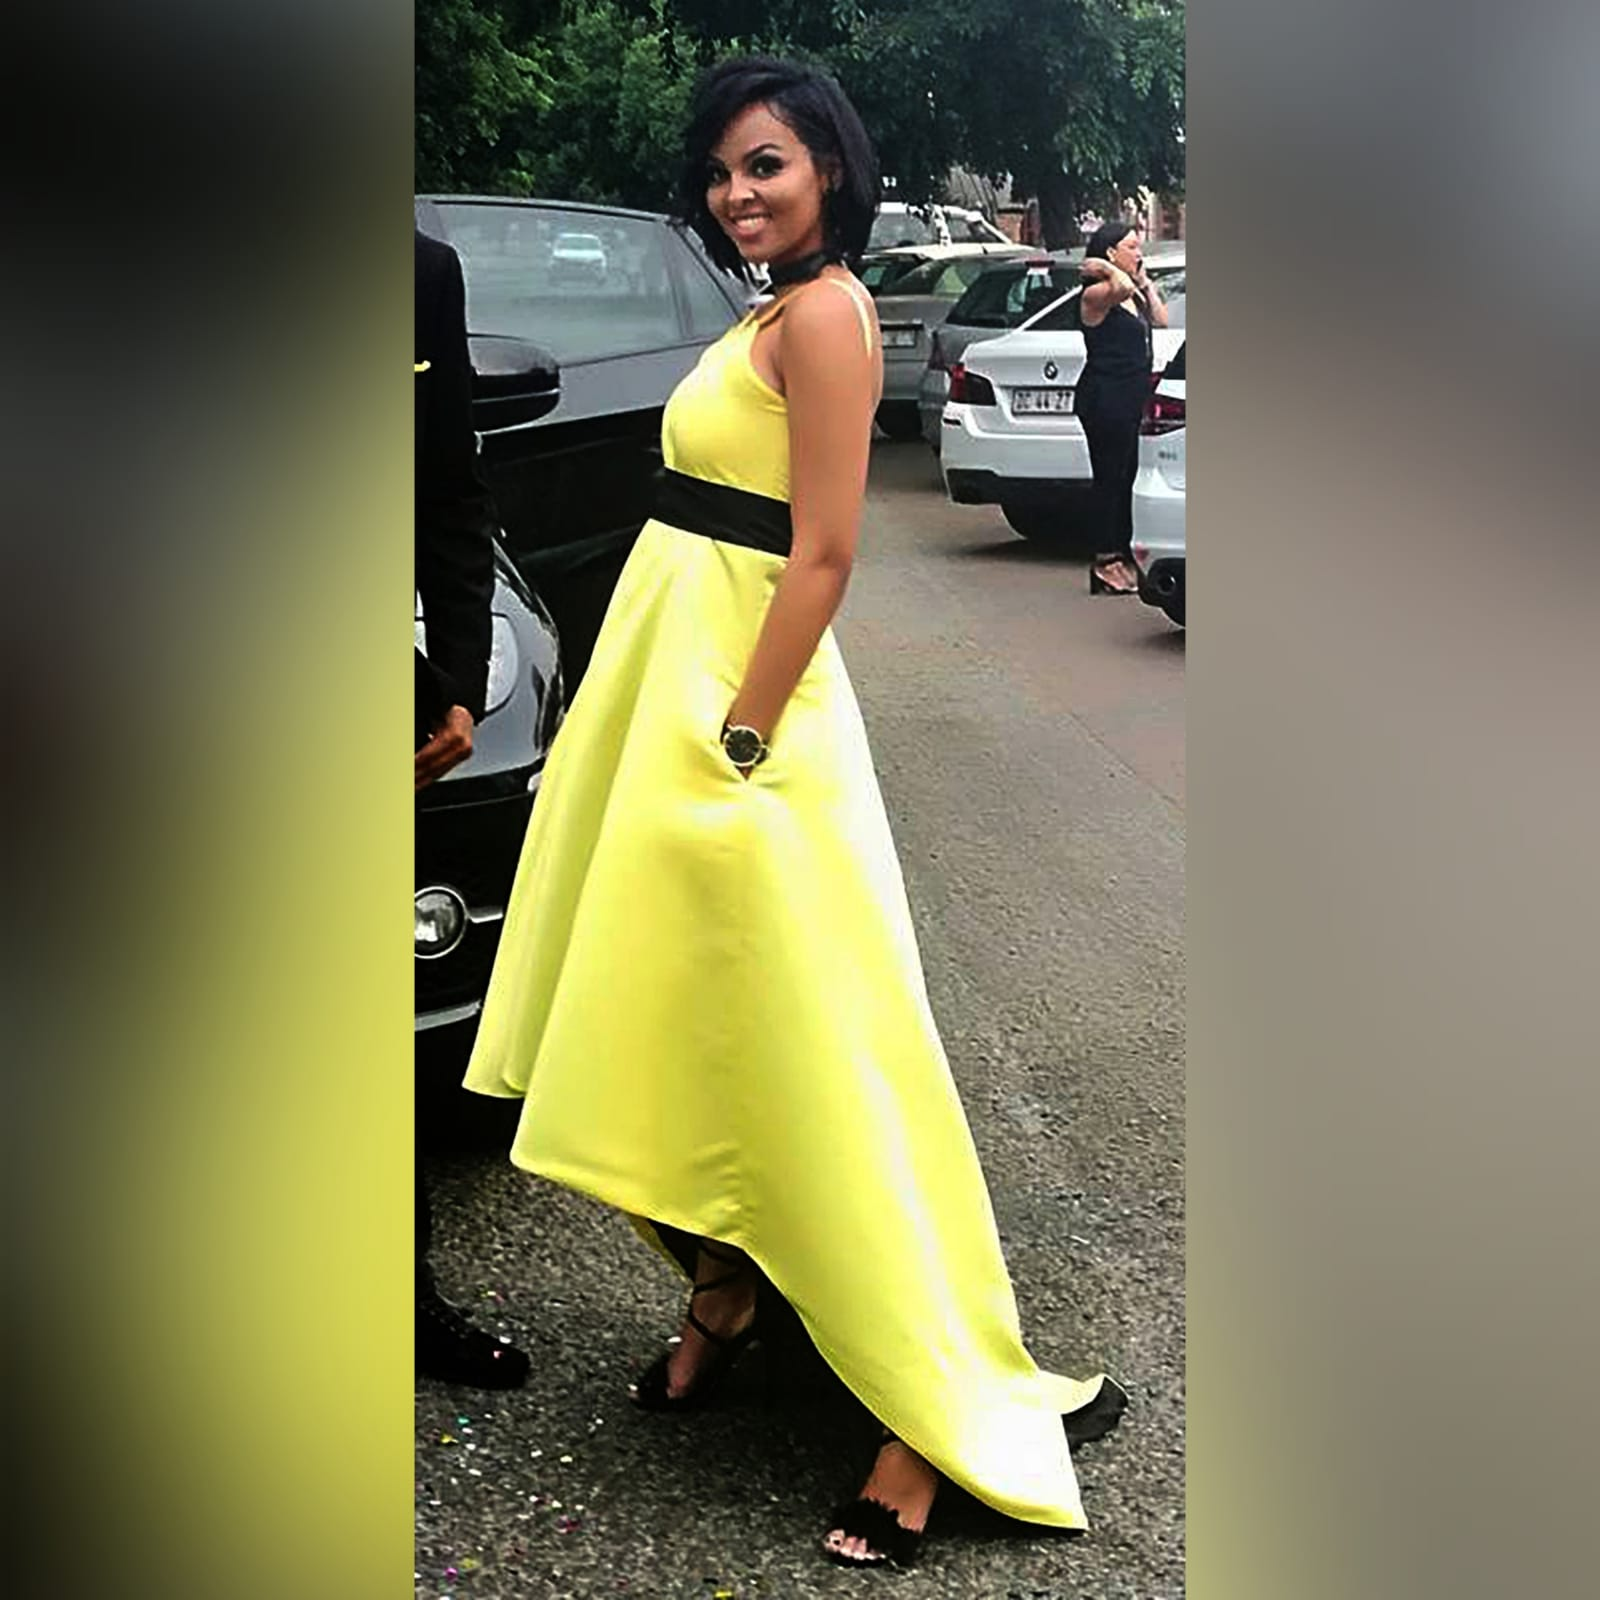 Yellow and black high low prom dress 1 yellow & black high low prom dress with an open back, pockets and a detachable black belt